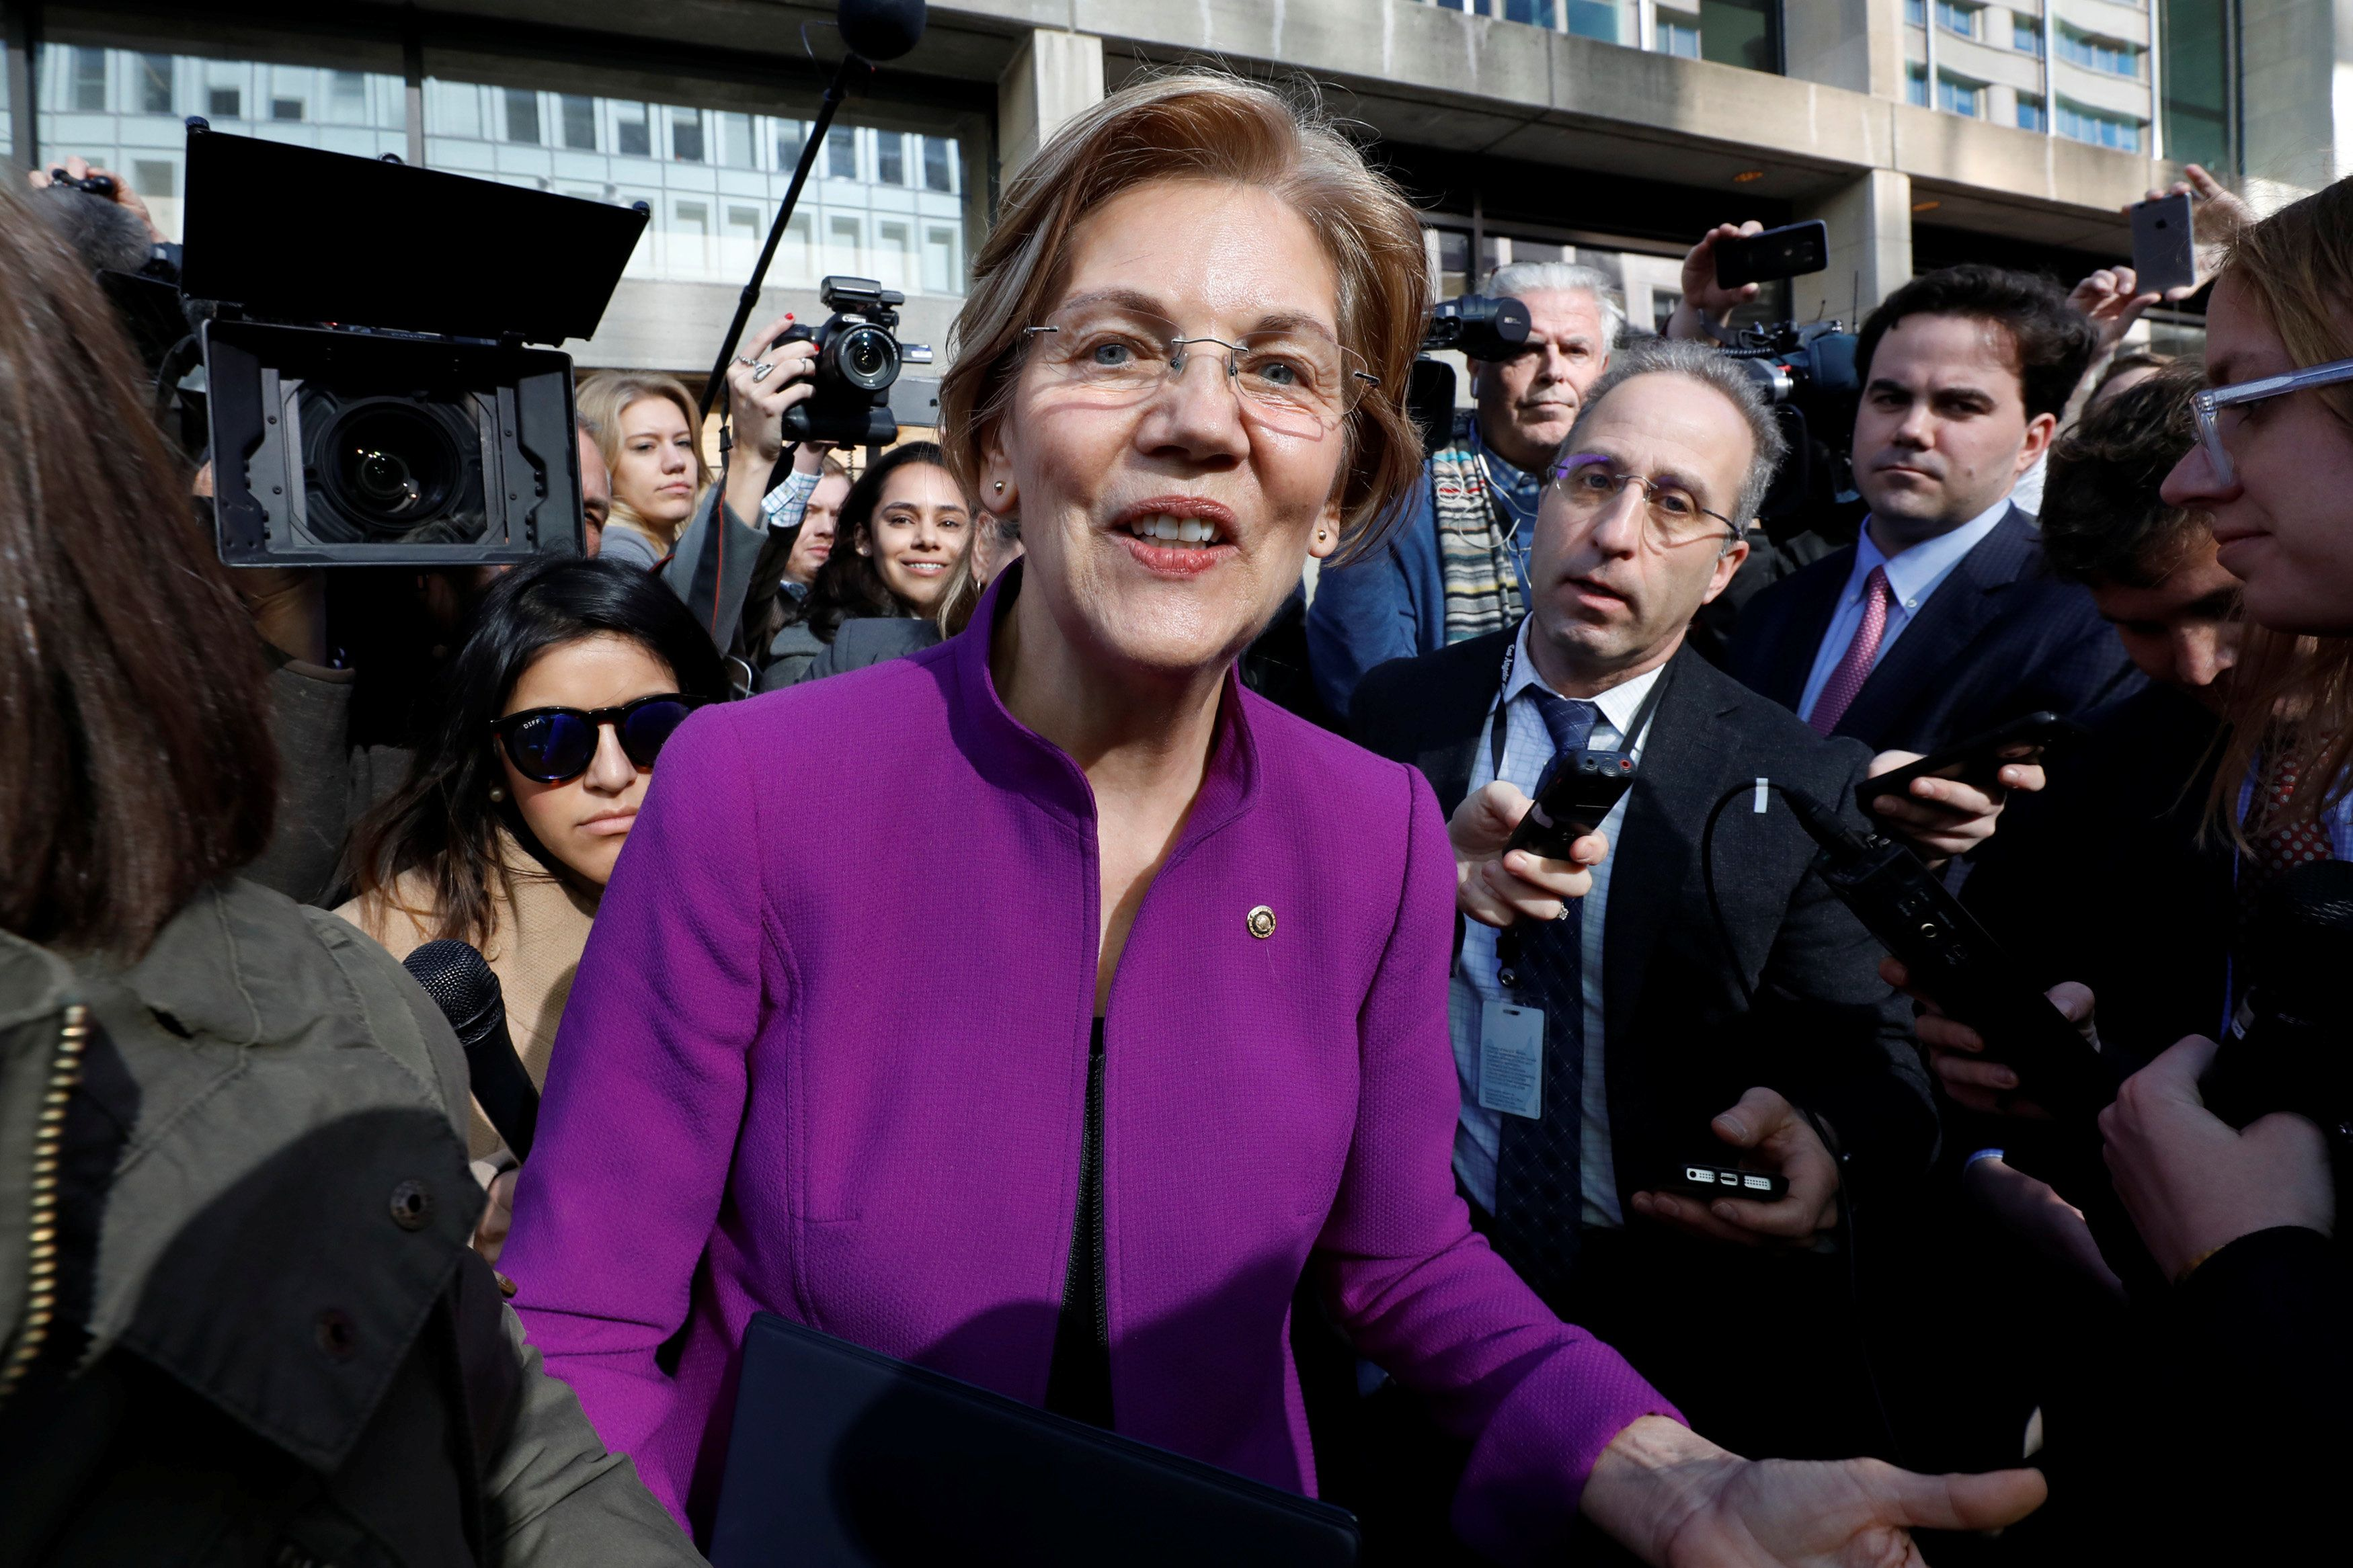 Senator Elizabeth Warren (D-MA) leaves after a protest outside of the Consumer Financial Protection Bureau (CFPB) headquarters demanding that OMB Director Mick Mulvaney step aside and let Leandra English do her job in Washington, U.S., November 28, 2017. REUTERS/Yuri Gripas